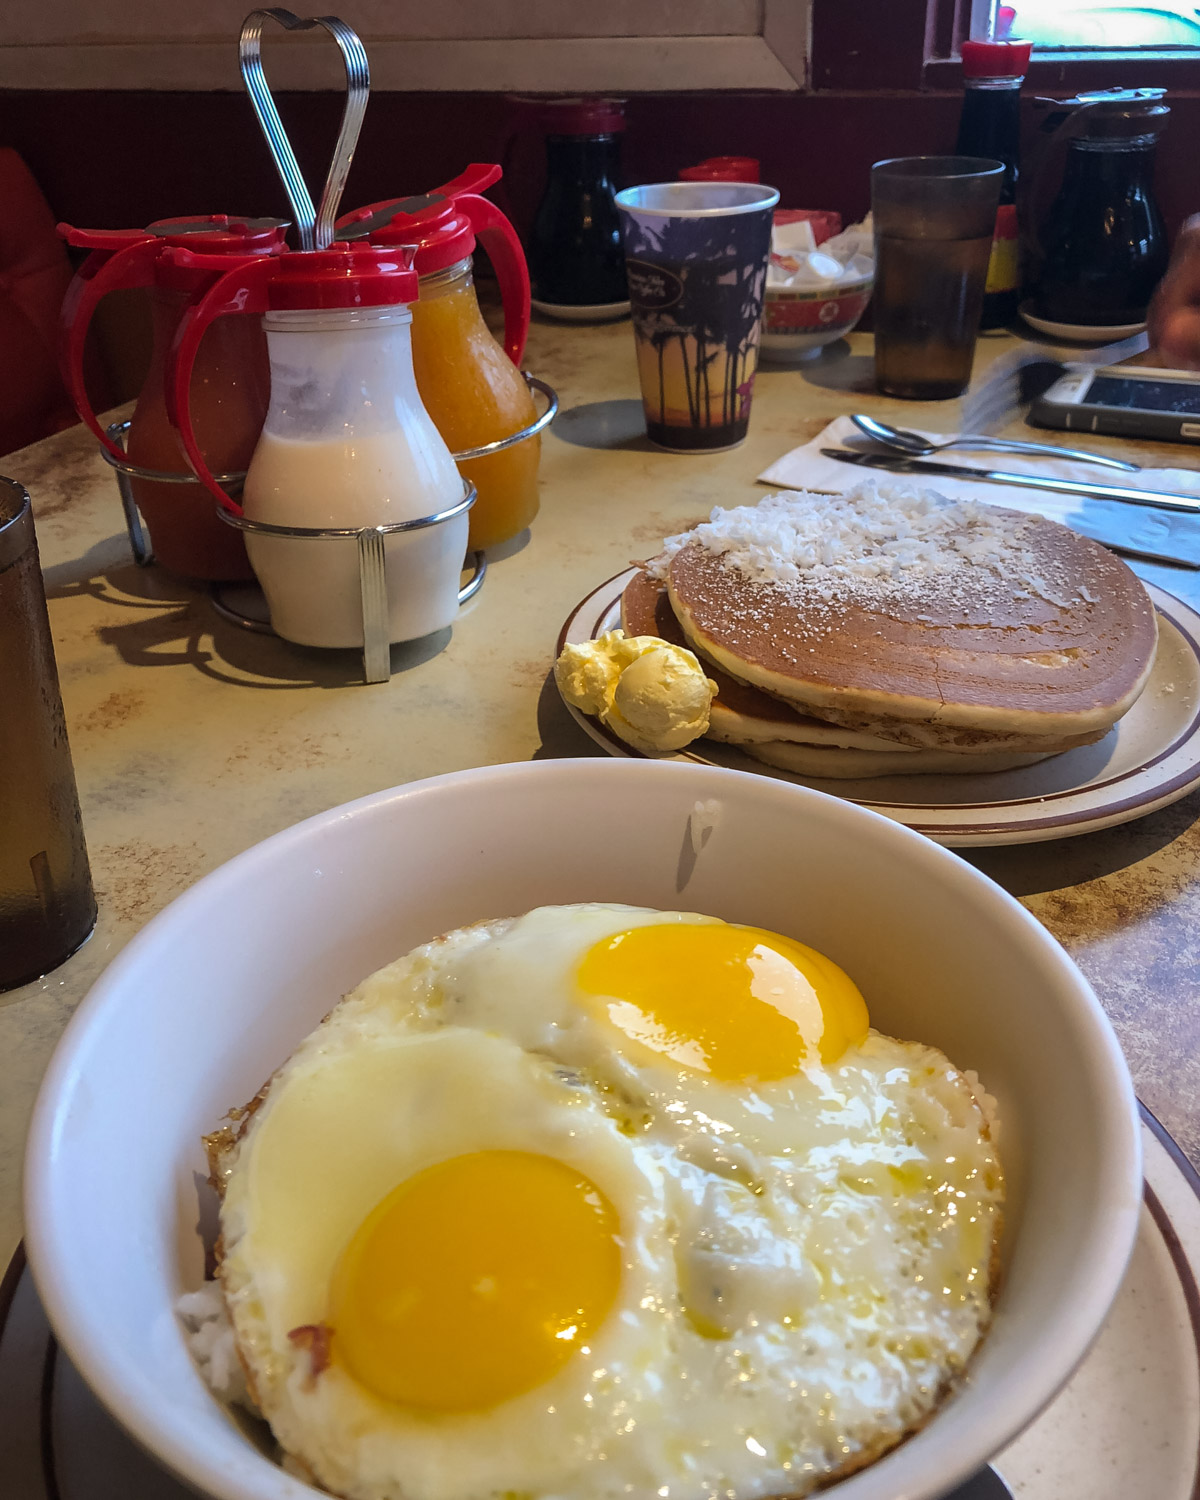 Unique Hawaiian-themed diner -  Ken's House of Pancakes